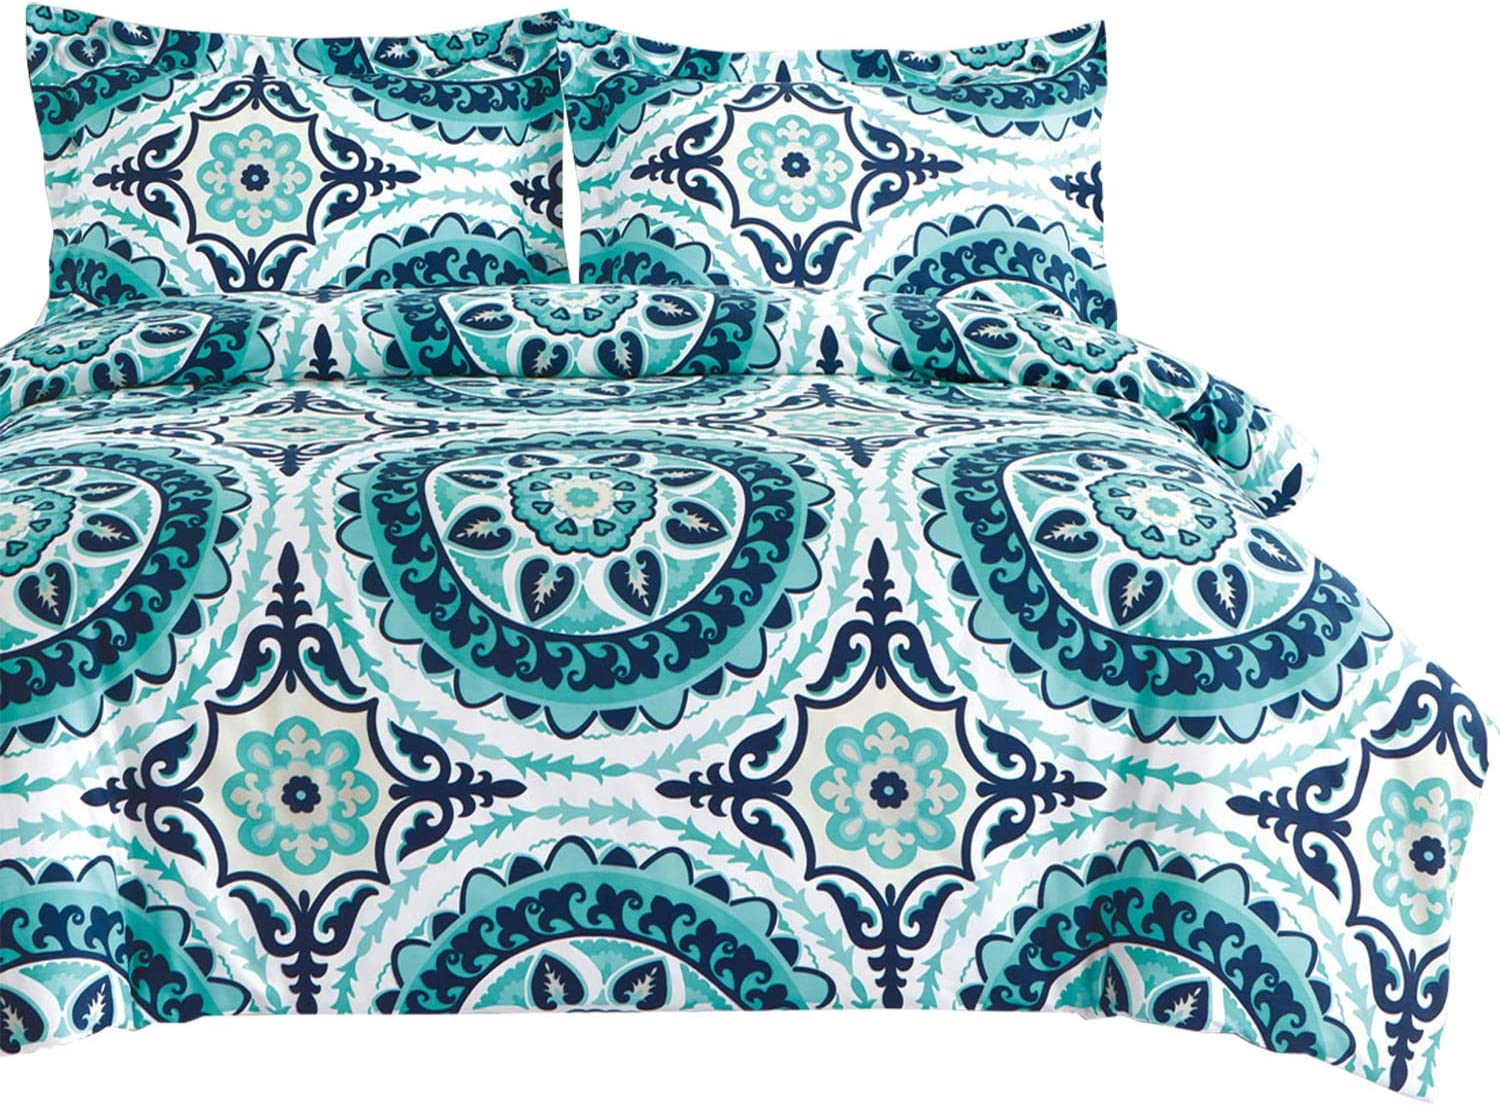 Wake In Cloud - Teal Comforter Set, Turquoise and Navy Blue Bohemian Boho Chic Mandala Medallion Pattern Printed on White, Soft Microfiber Bedding (3pcs, California King Size)